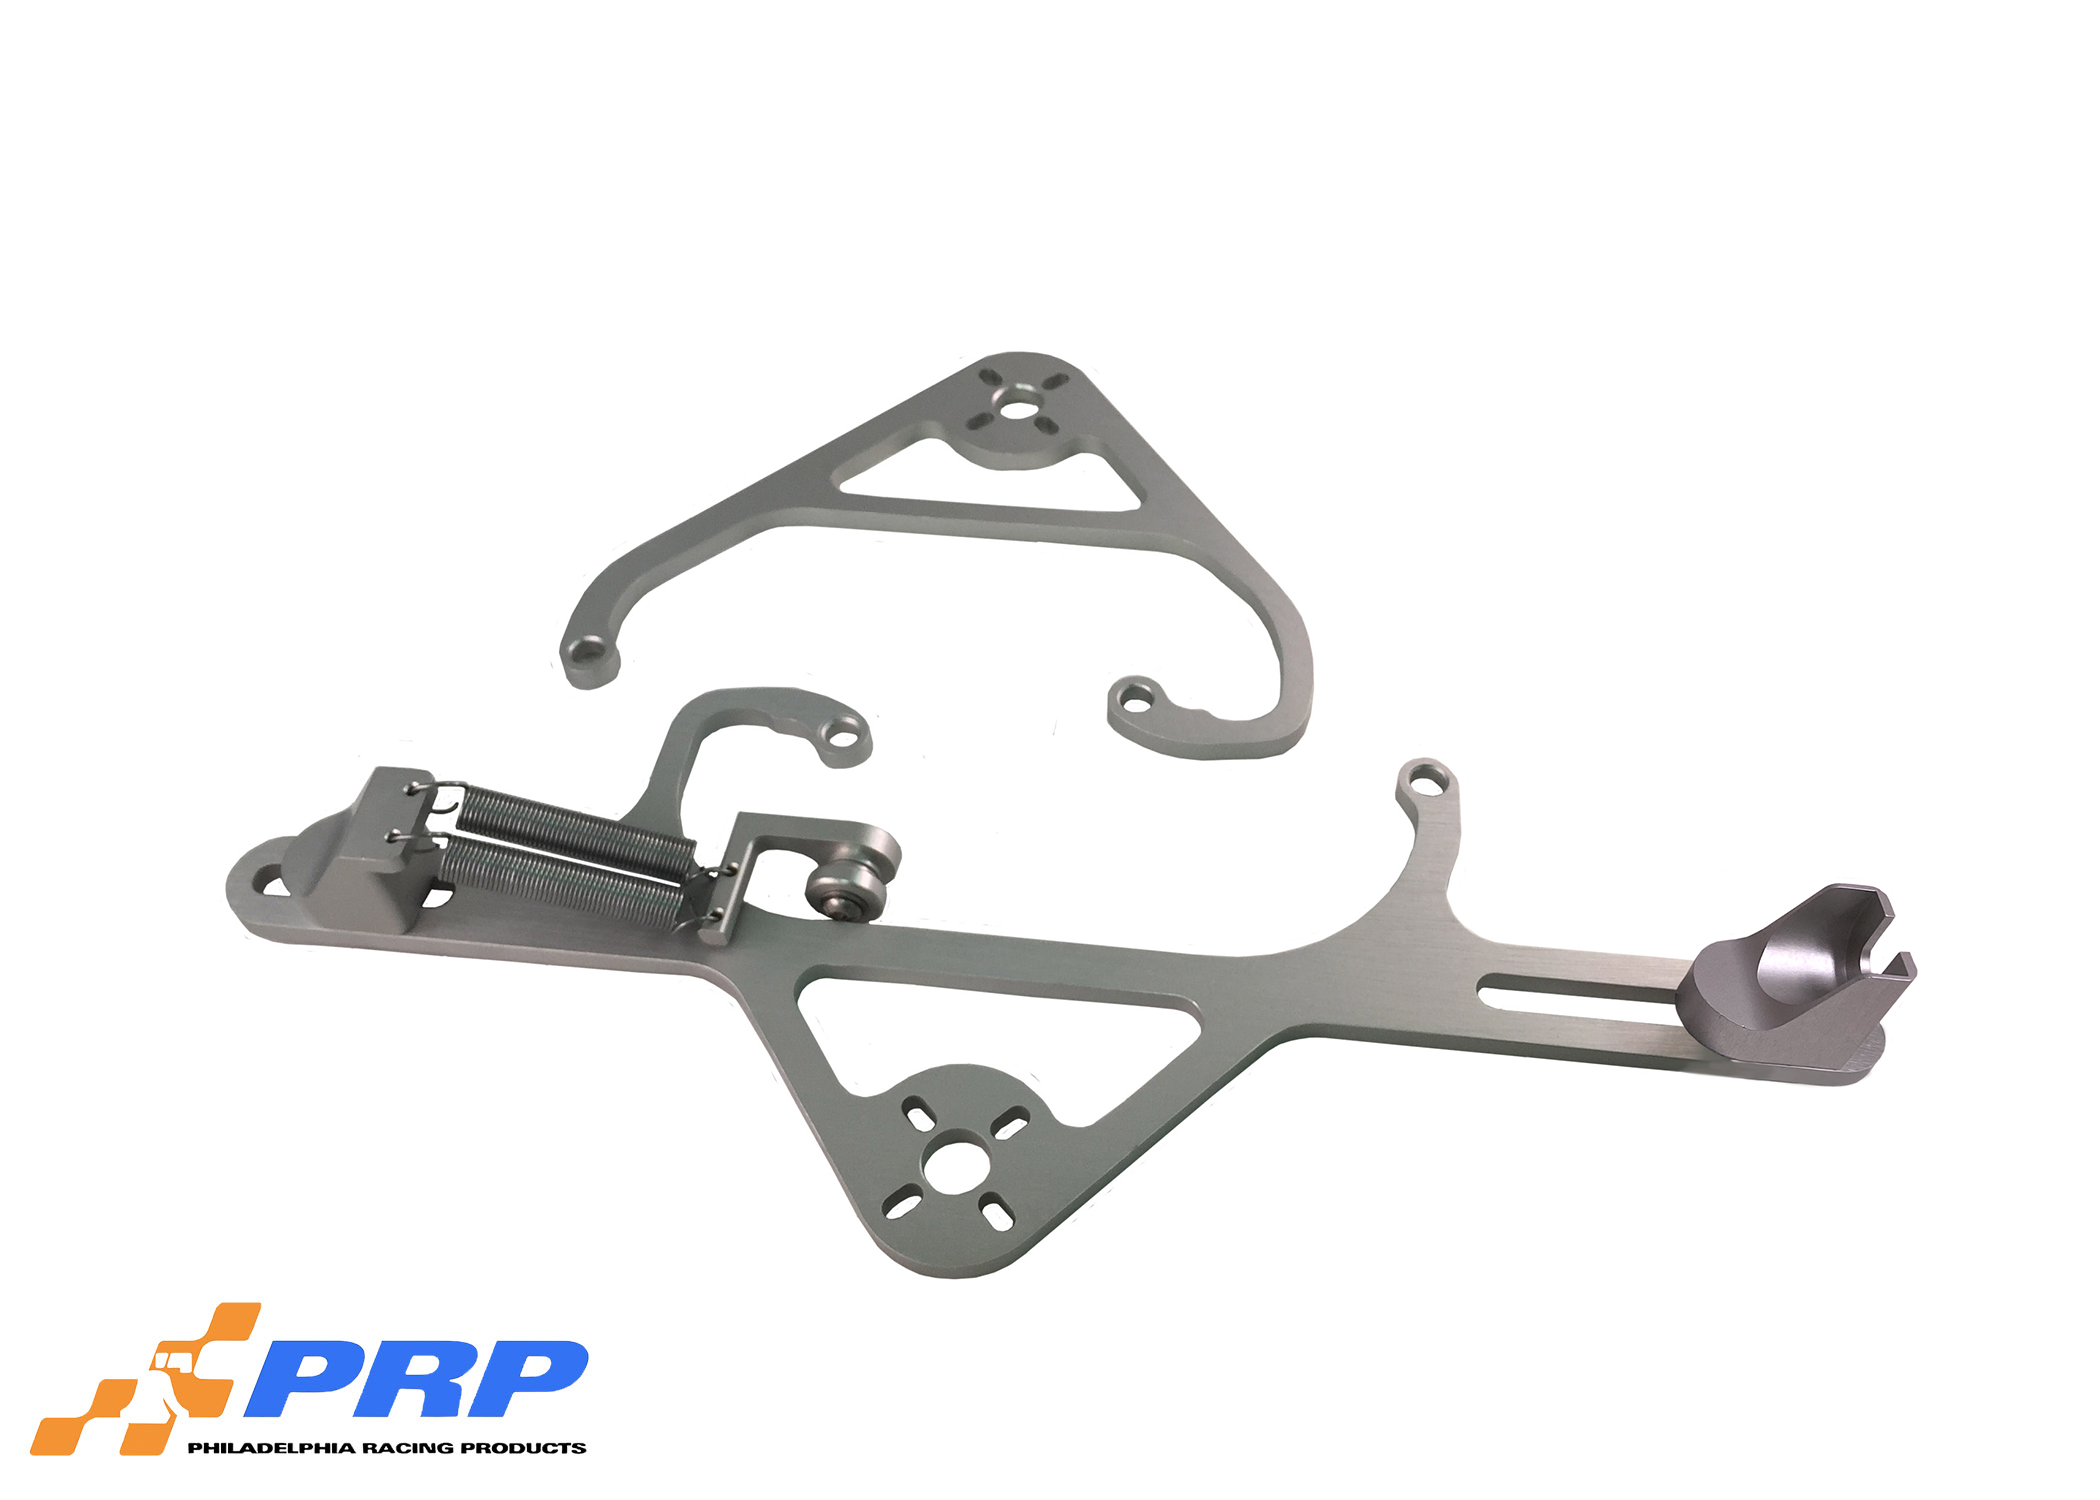 Clear 4150 Nitrous Valve Mounting Brackets with Throttle Bracket made by PRP Racing Products